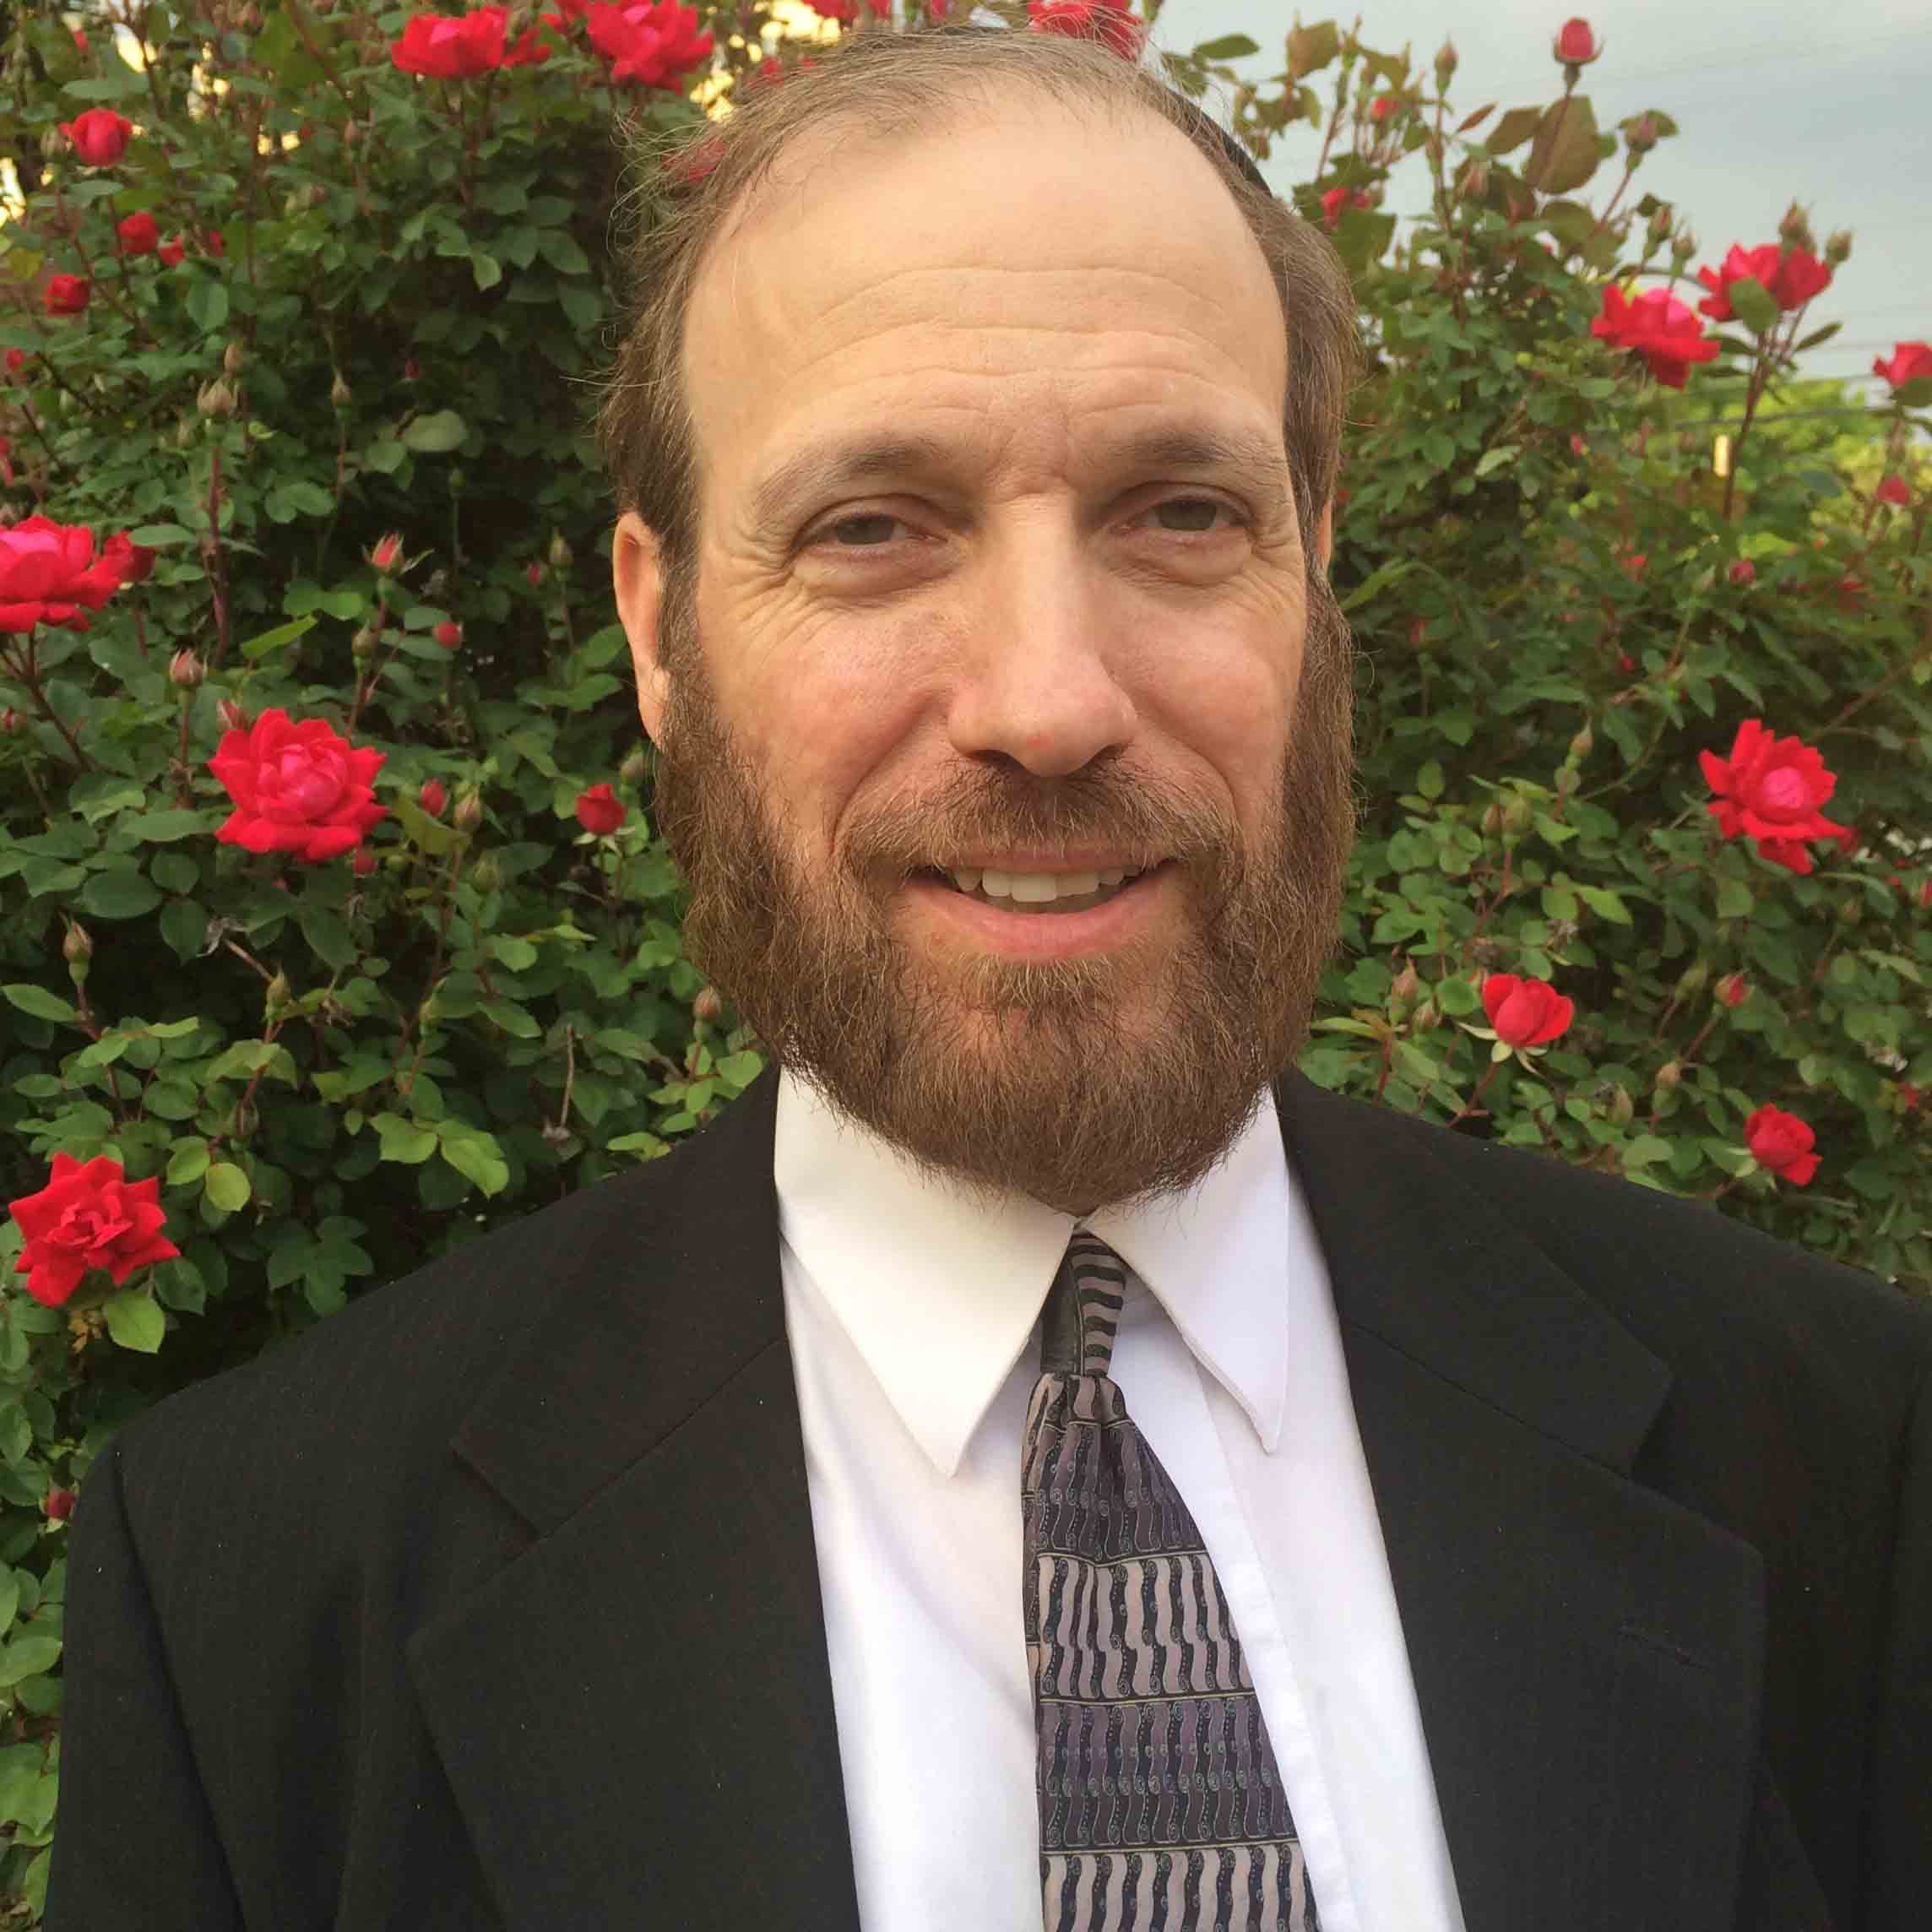 Rabbi David Borenstein